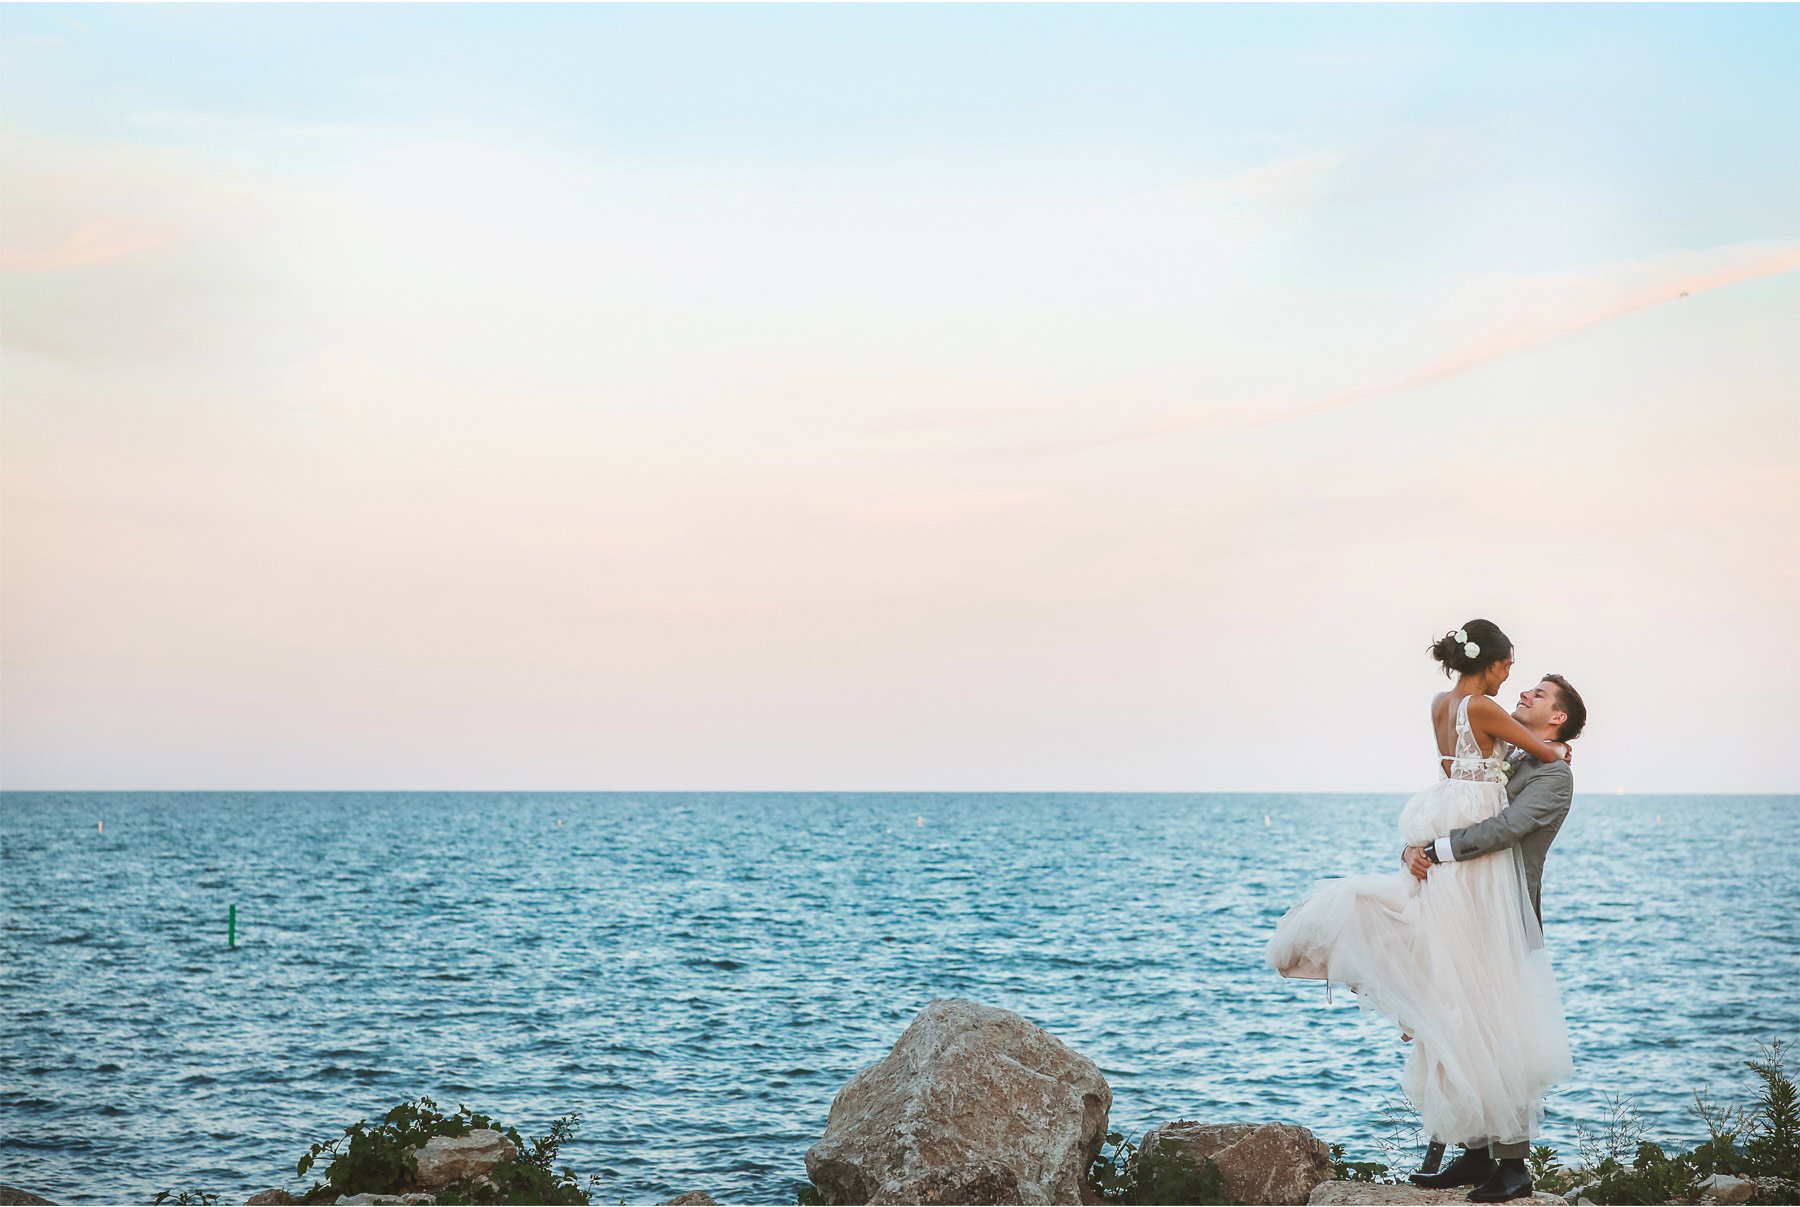 21-Wedding-by-Andrew-Vick-Photography-Chicago-Illinois-Groom-Bride-Shore-Beach-Lake-Michigan-Ashley-and-Nicholas.jpg